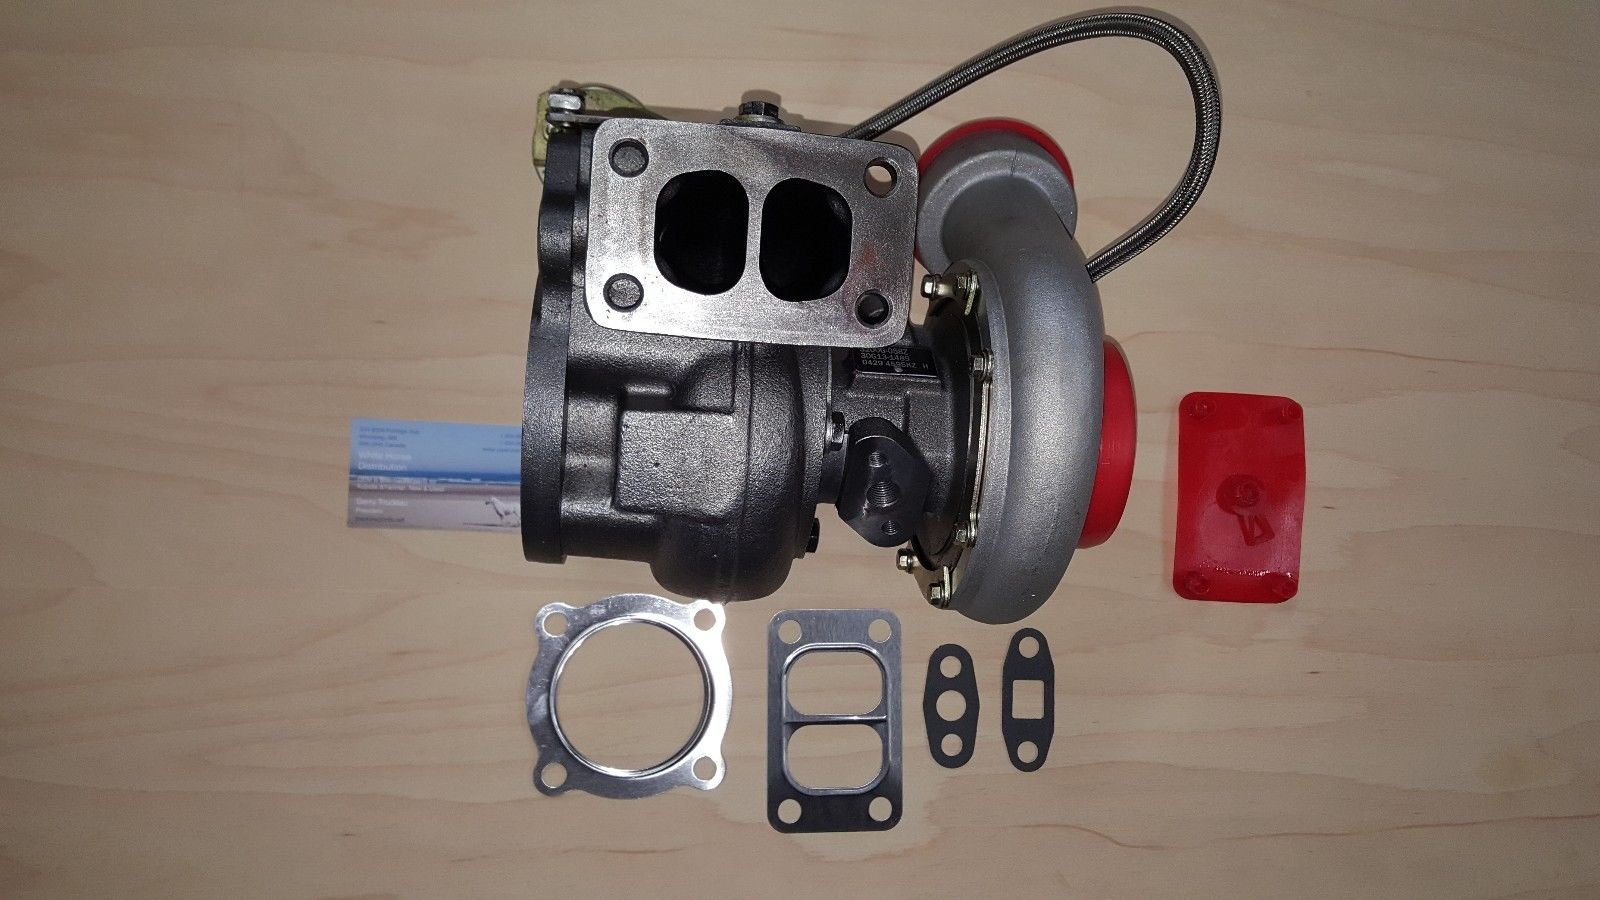 NEW Turbo for Volvo L110E, L110F, L120E, L120F, D7E NO CORE CHARGE by WHDT